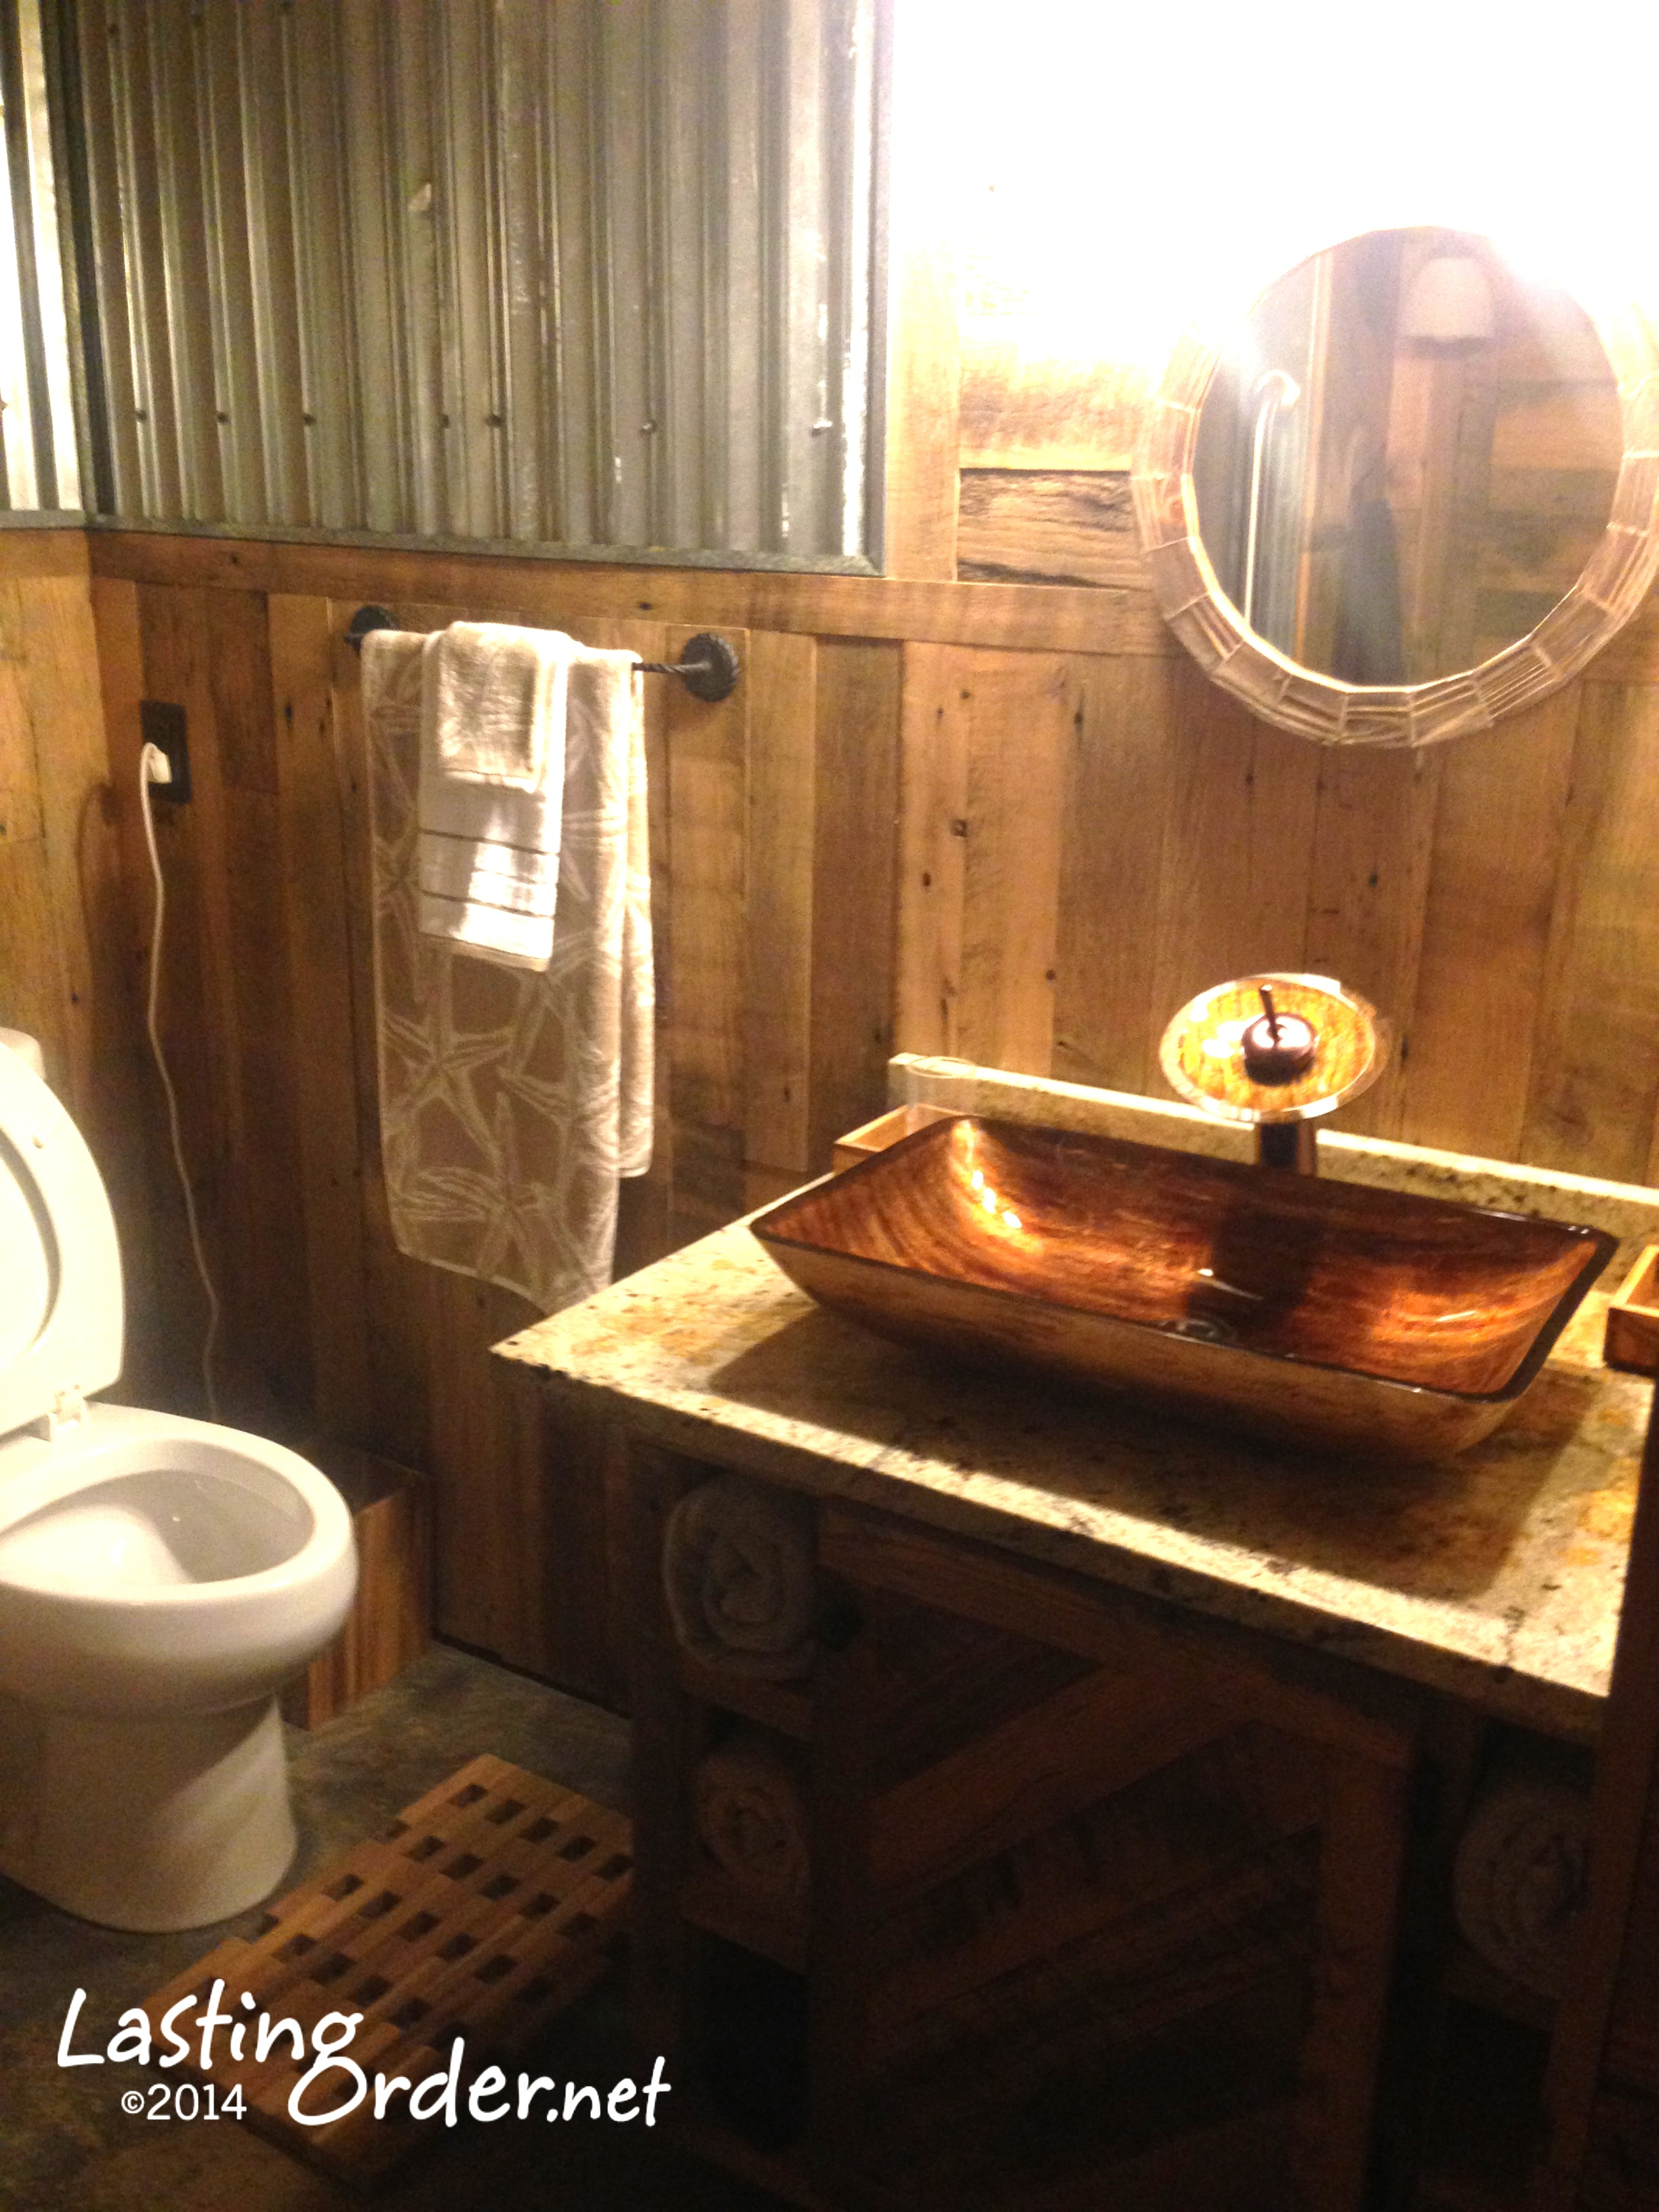 Coolest Bathroom Ever Organizing The Bathroom Before & After Photos  Lasting Order